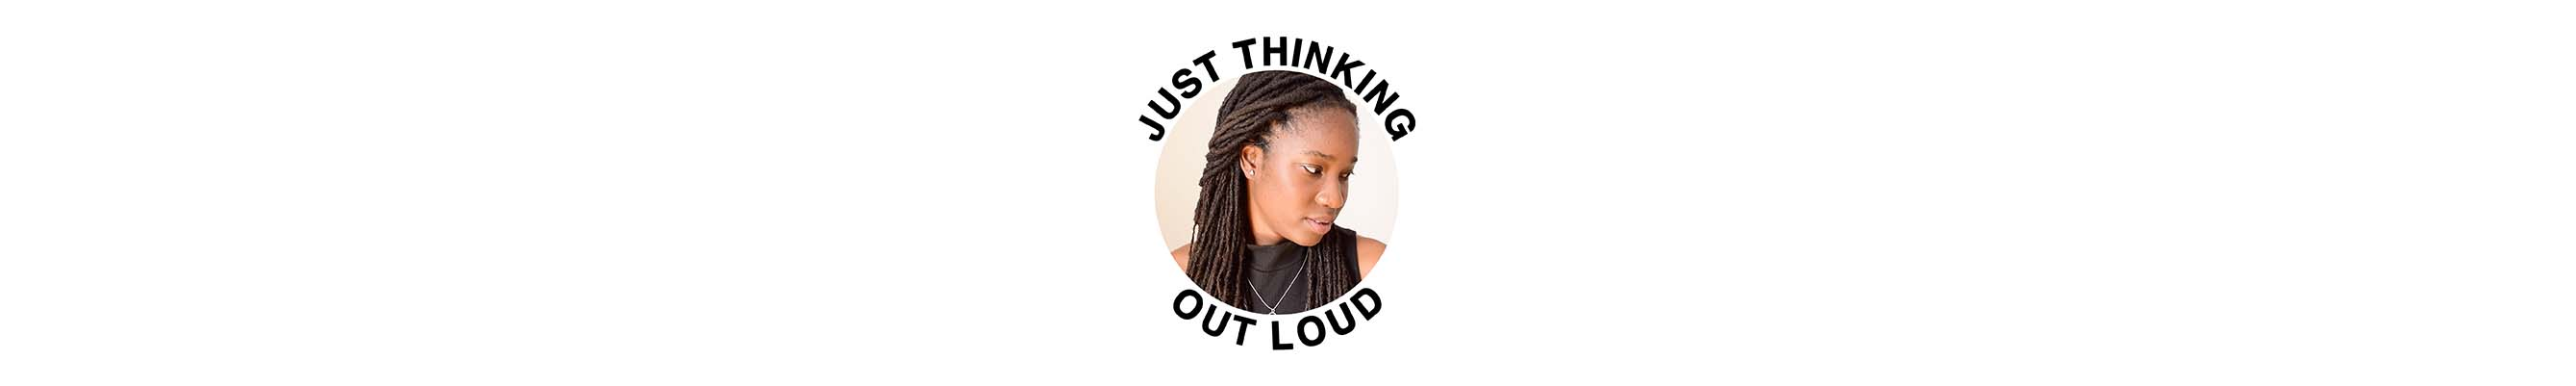 Just Thinking Out Loud Logo